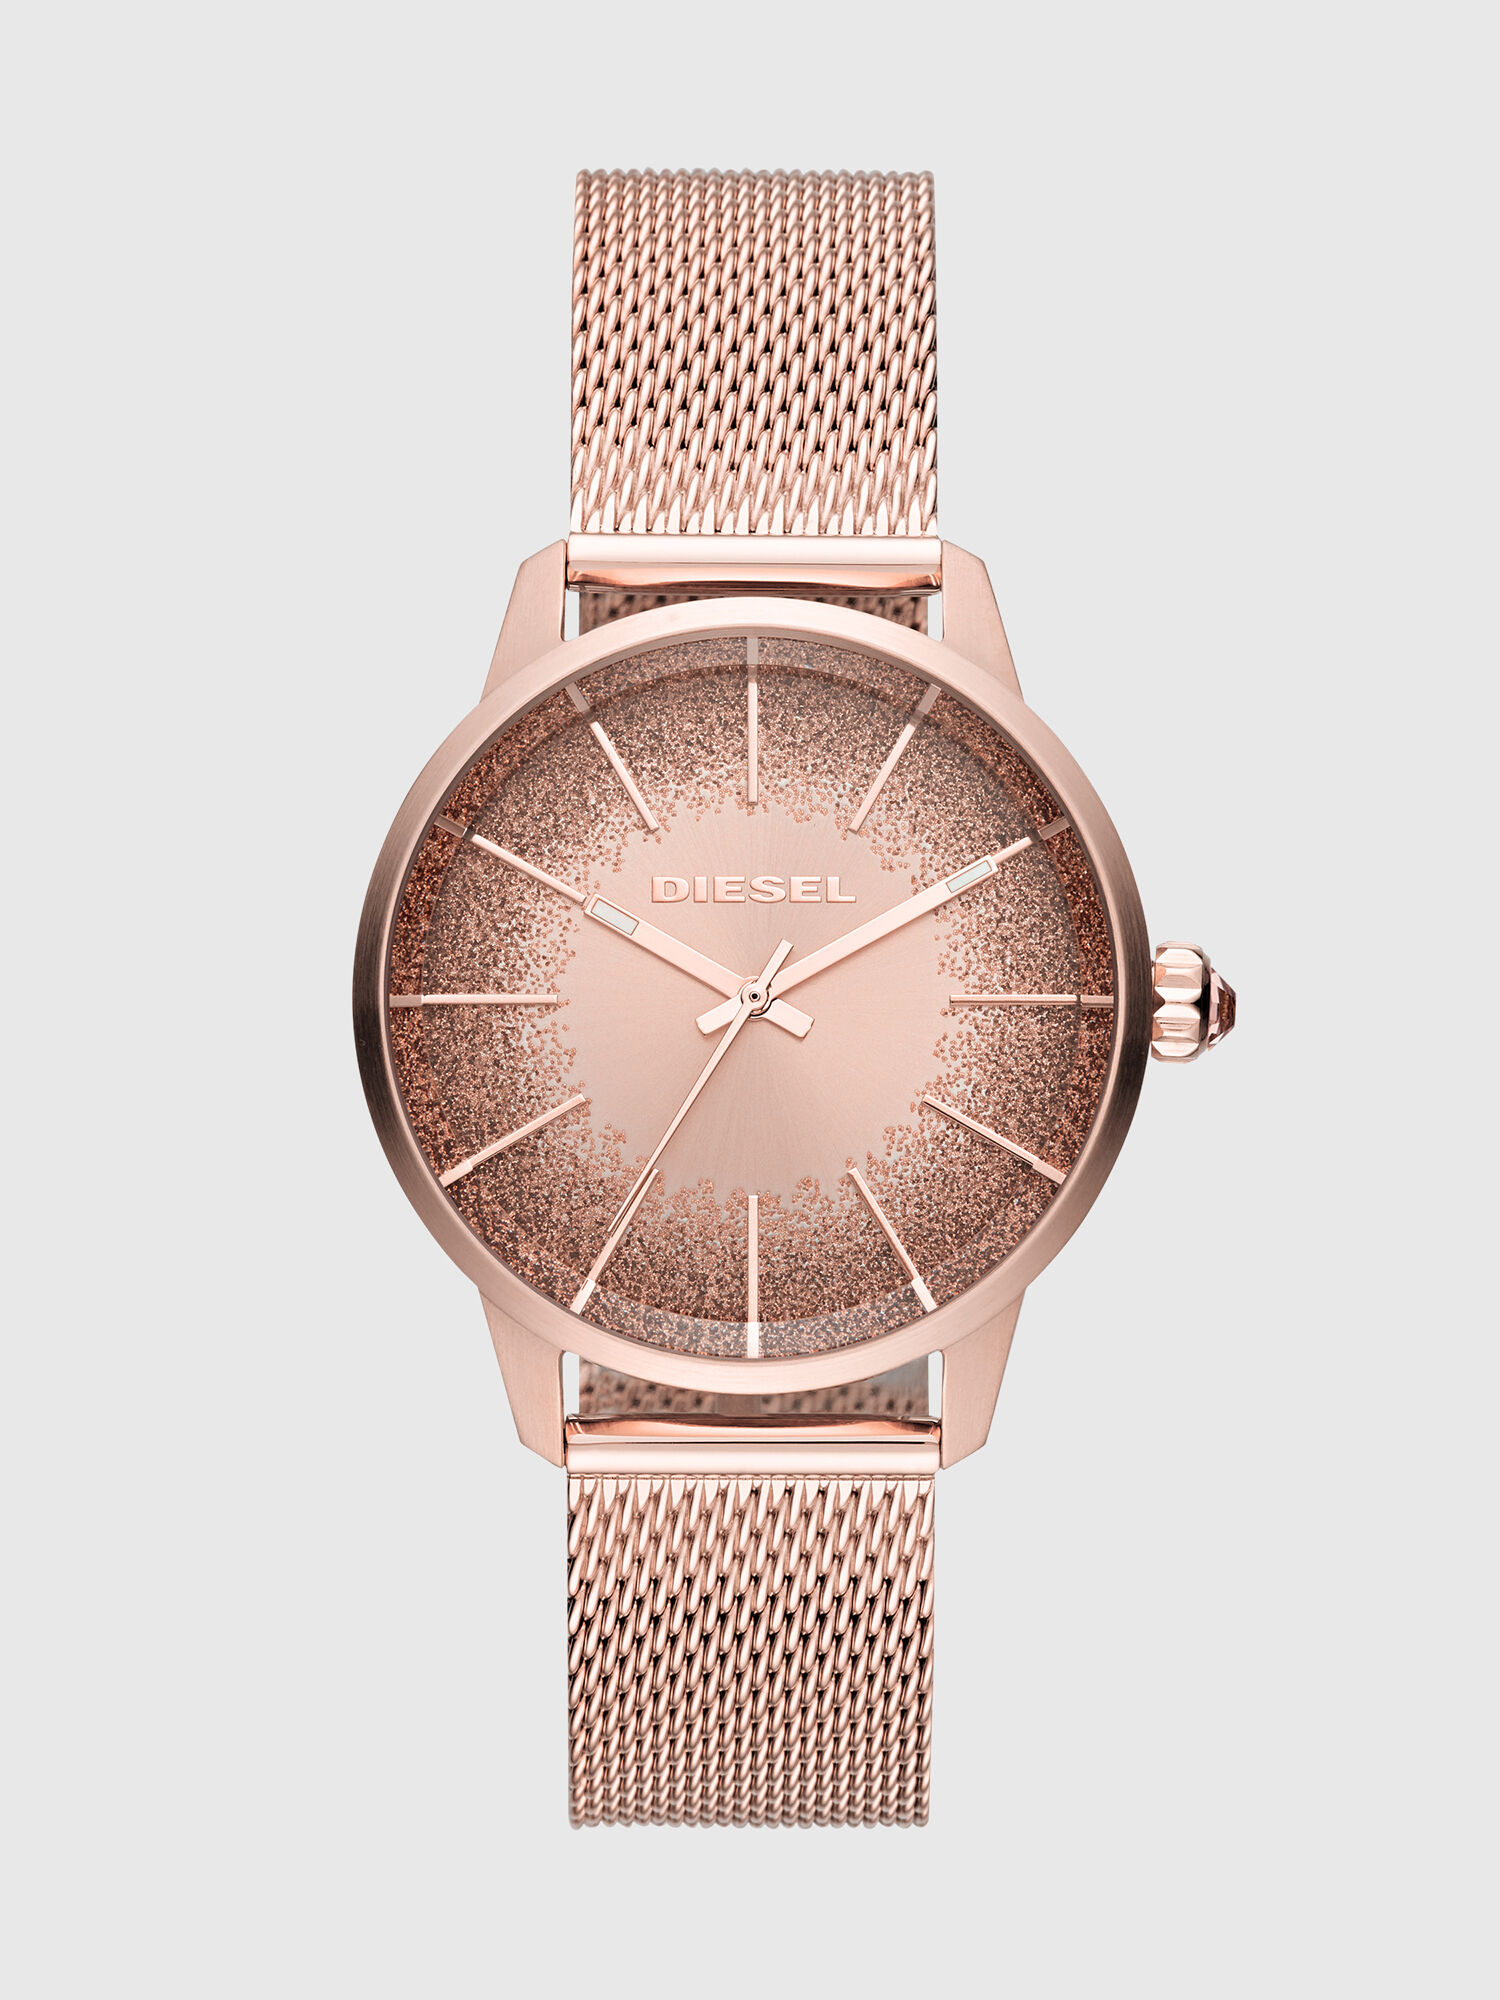 With Flaw MujerGo Relojes The On 5LRqAcjS34